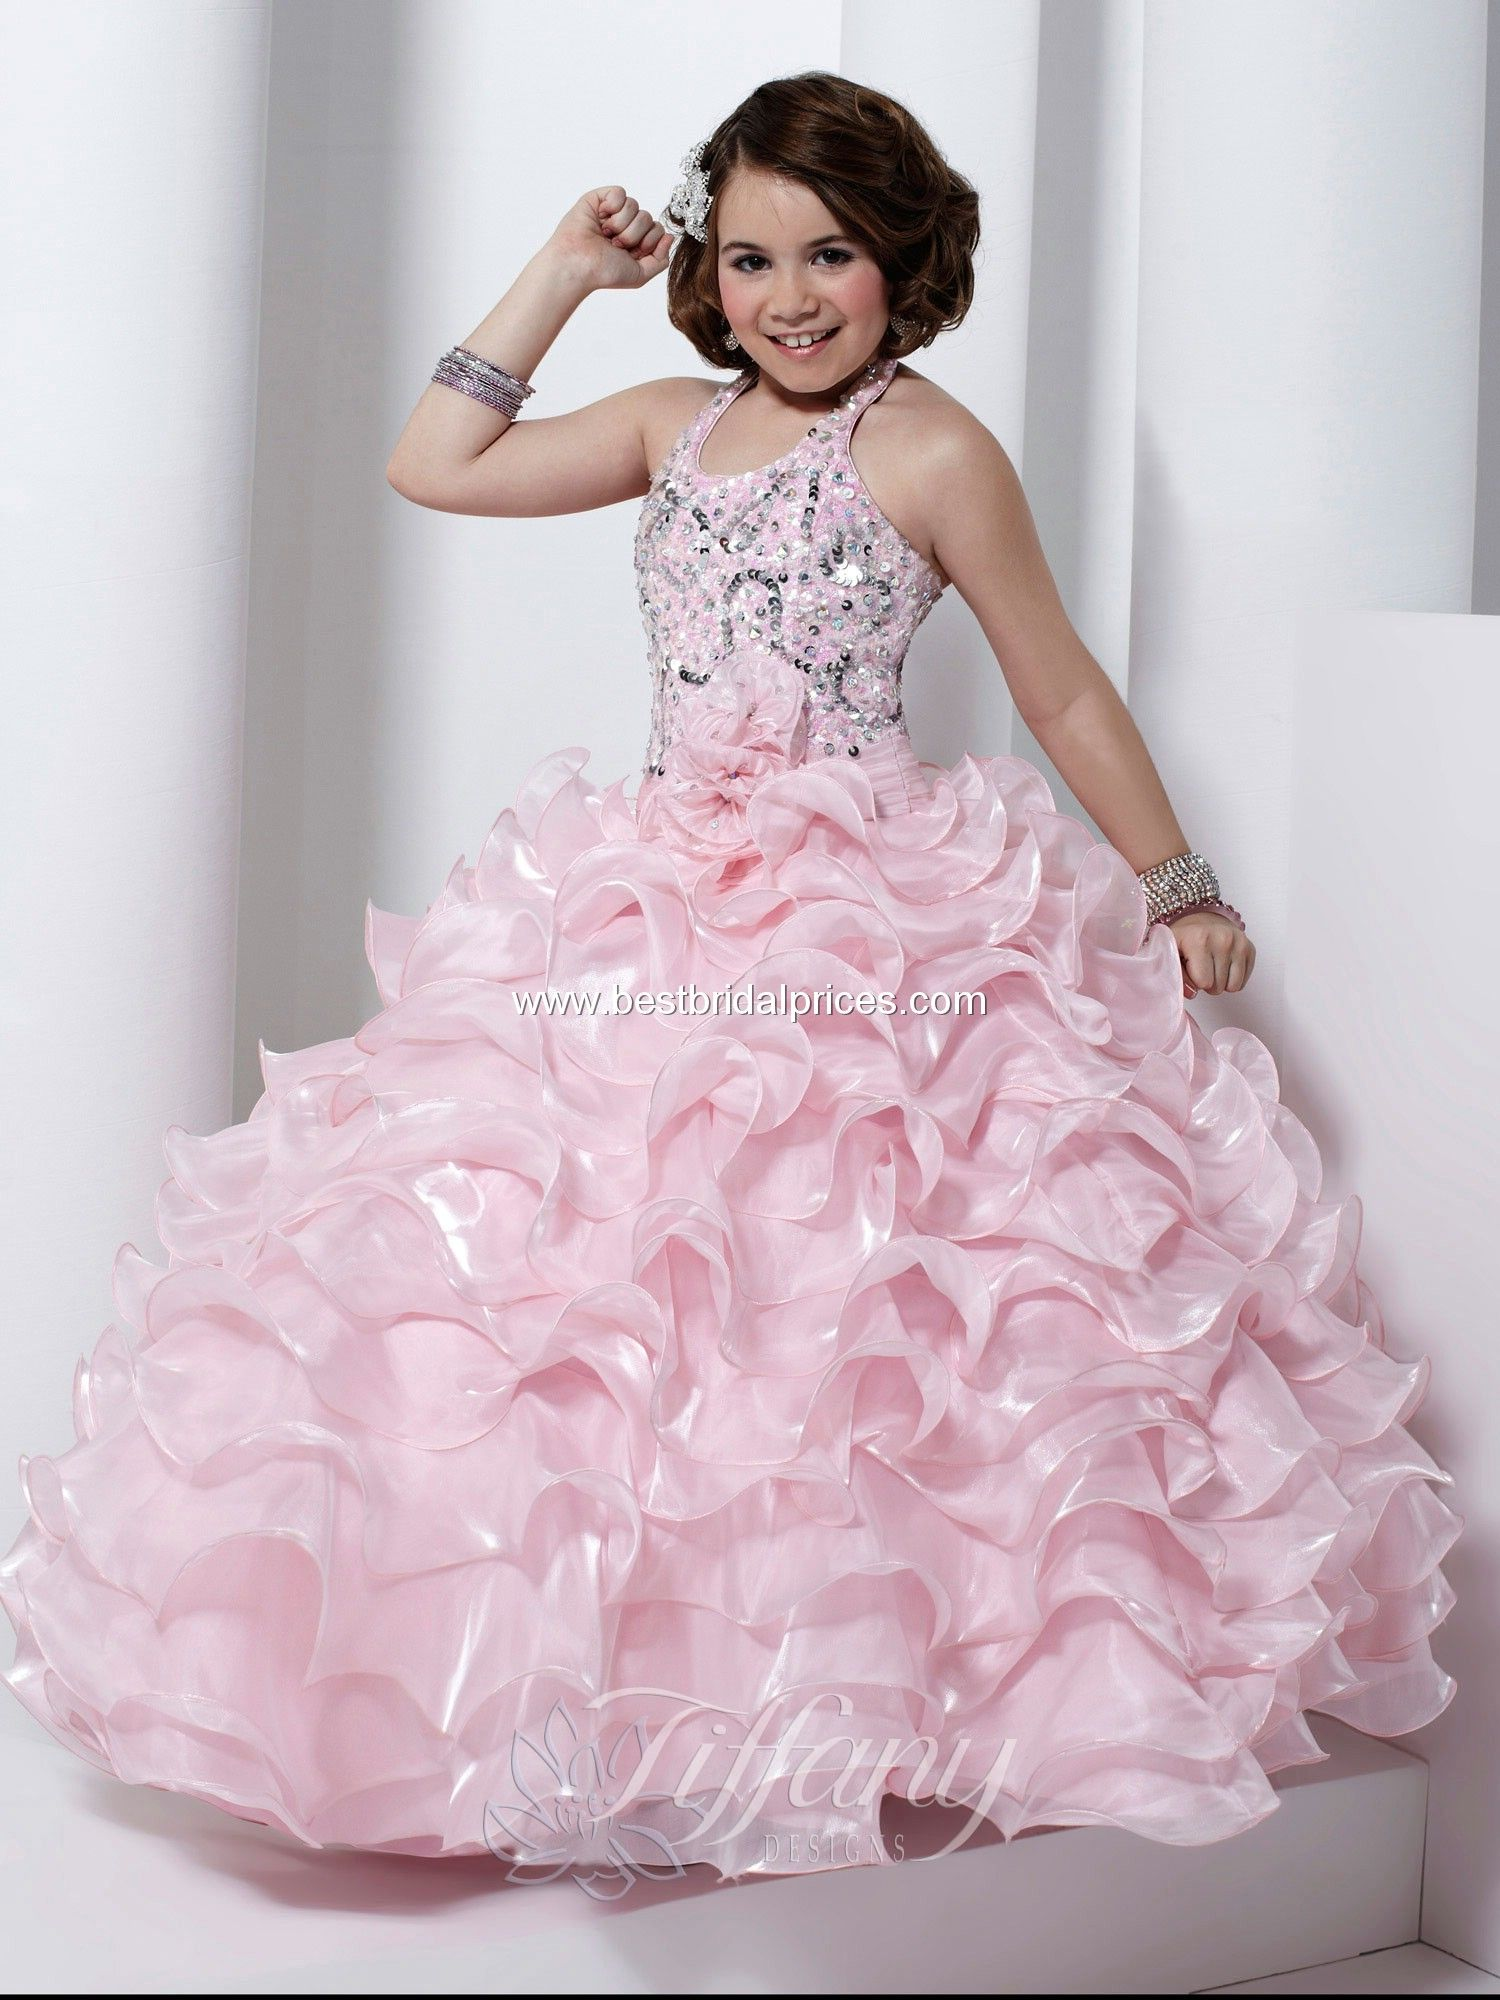 Tiffany princess dresses style pageant ideas pinterest